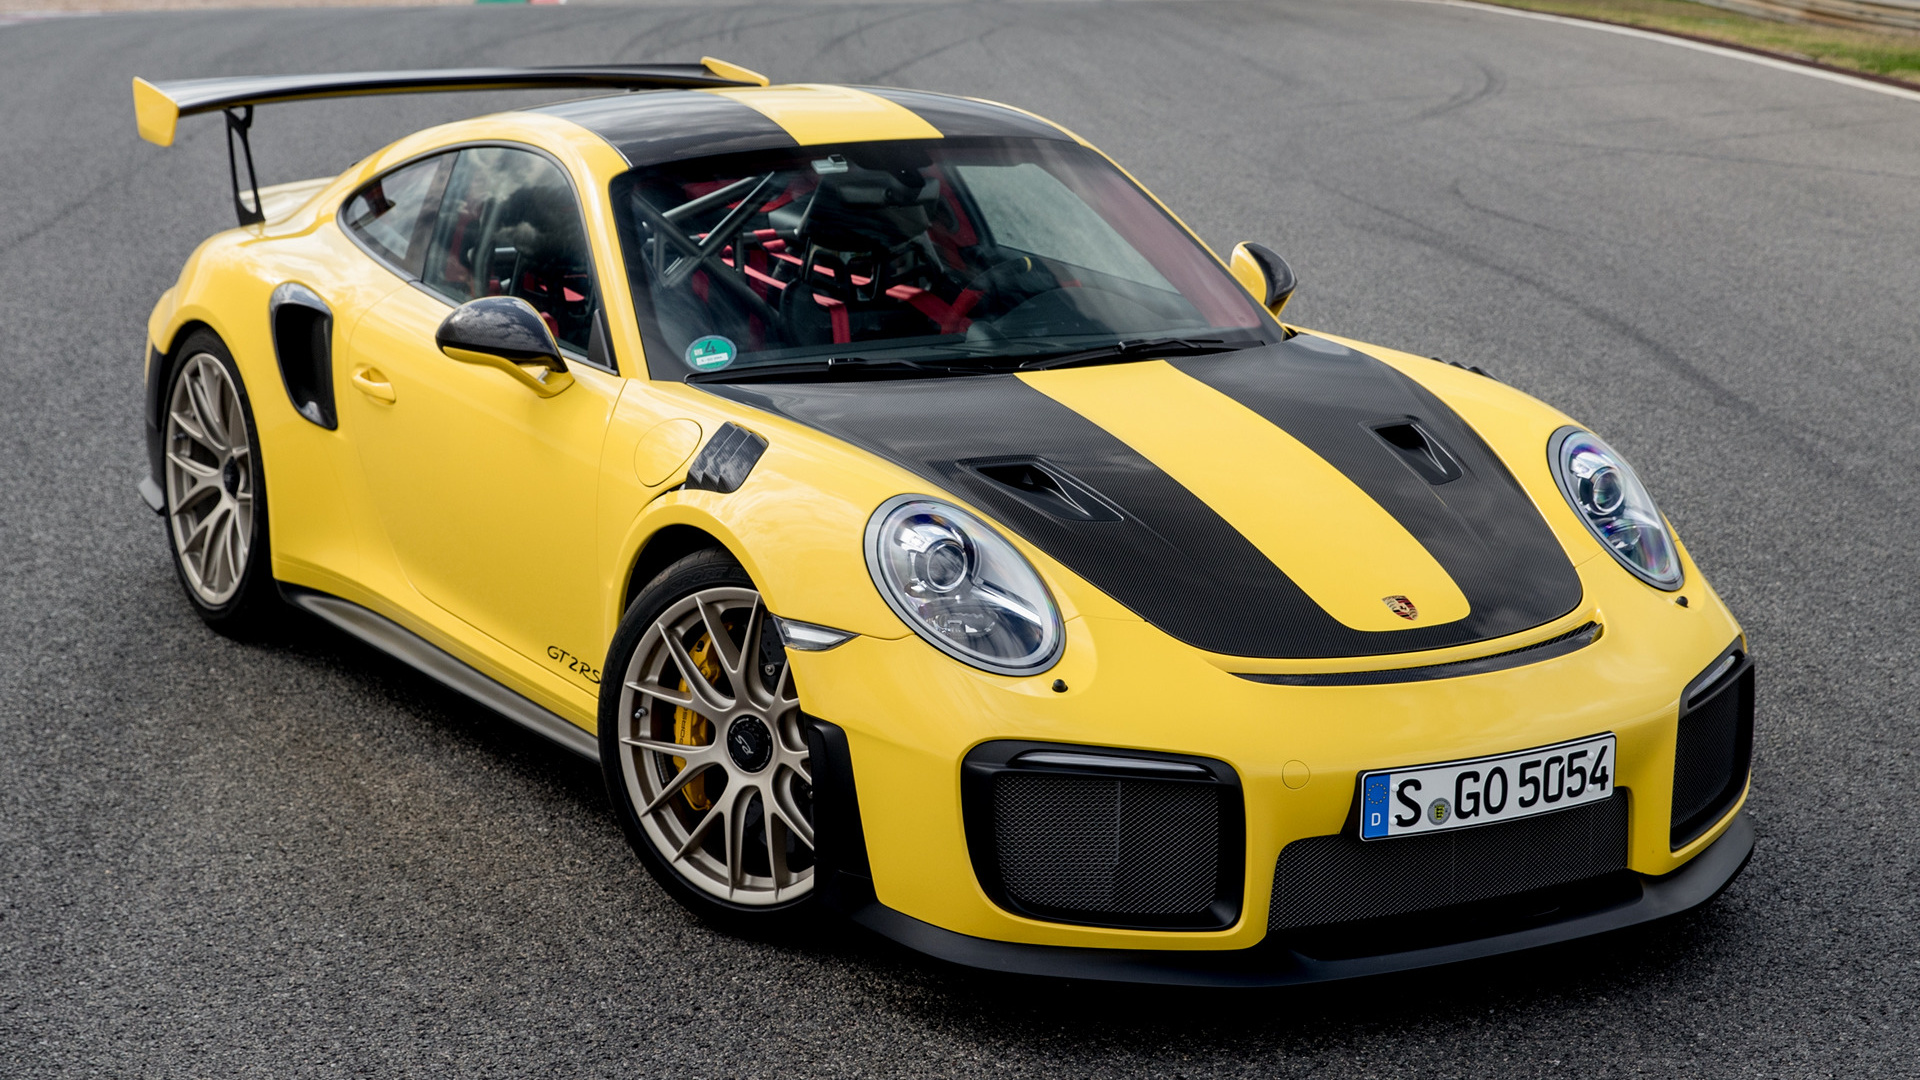 2017 Porsche 911 Gt2 Rs Hd Wallpaper Background Image